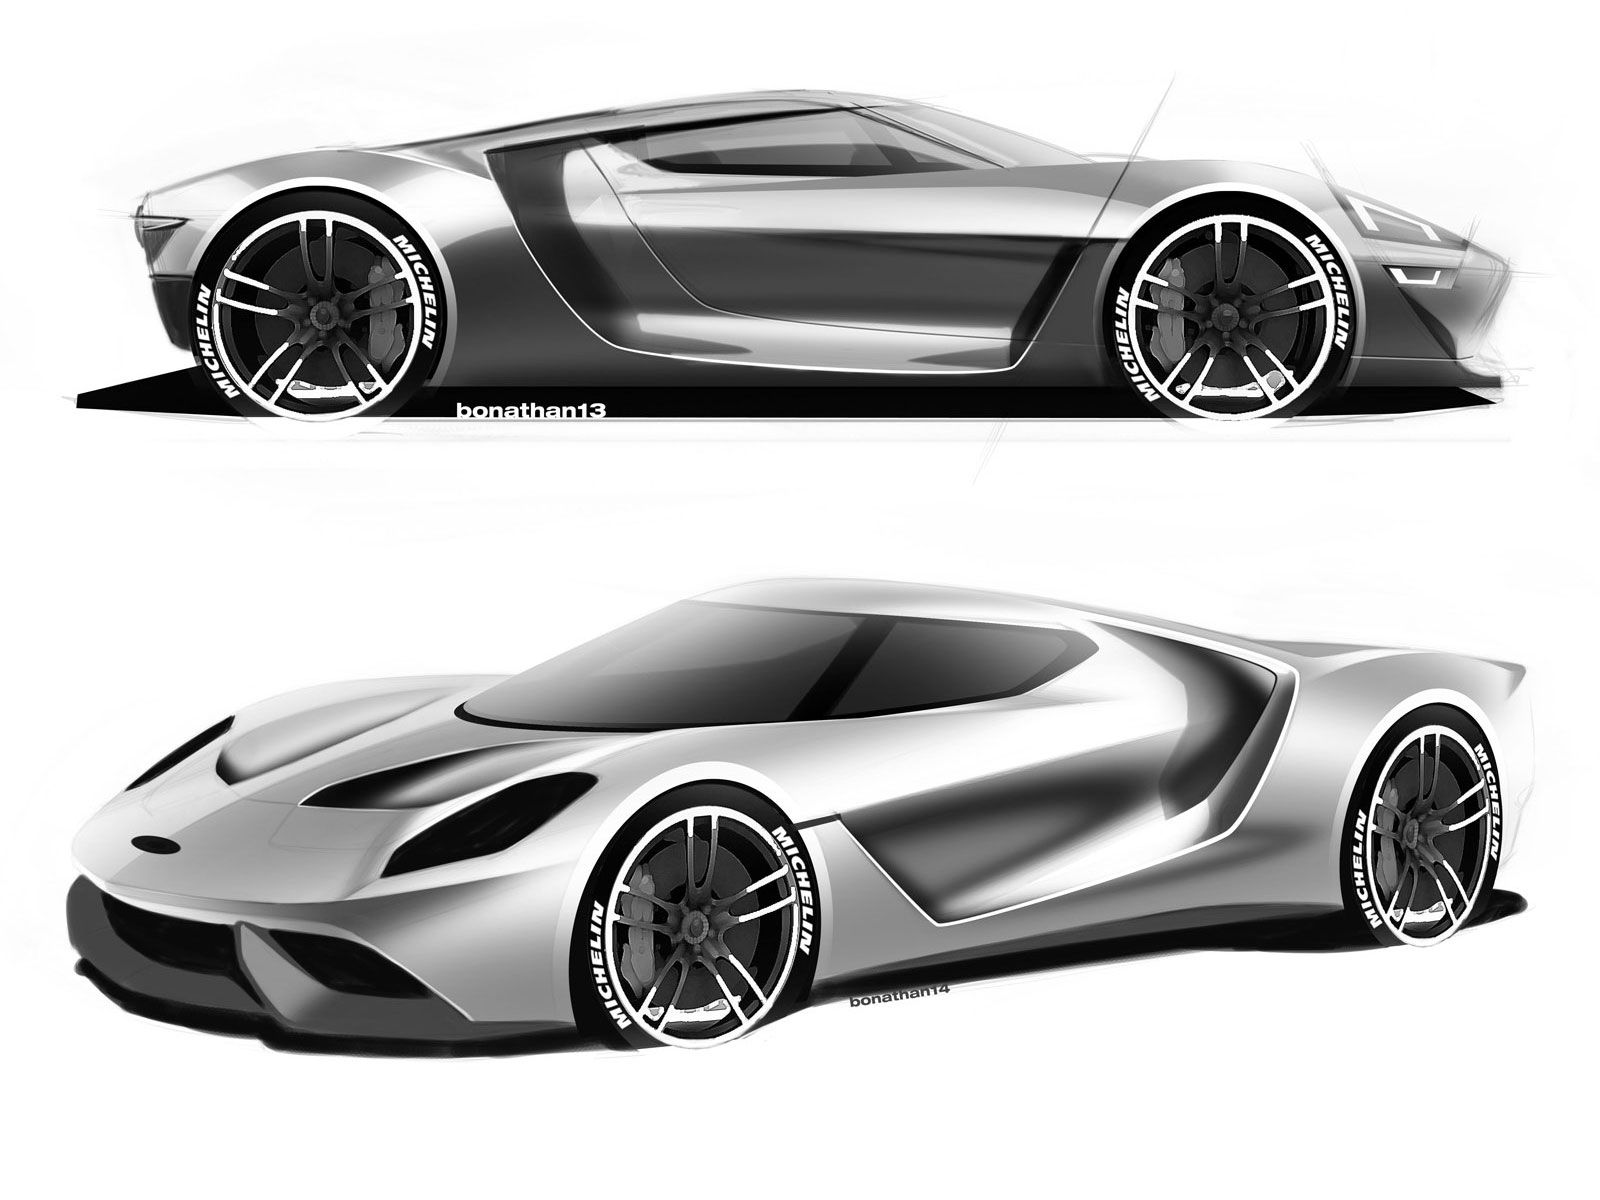 Ford Gt Production Extended Design Sketches Cardesign Carbodydesign Ford Fordgt Designsketch Design Supercar Concept Car Design Car Design Ford Gt